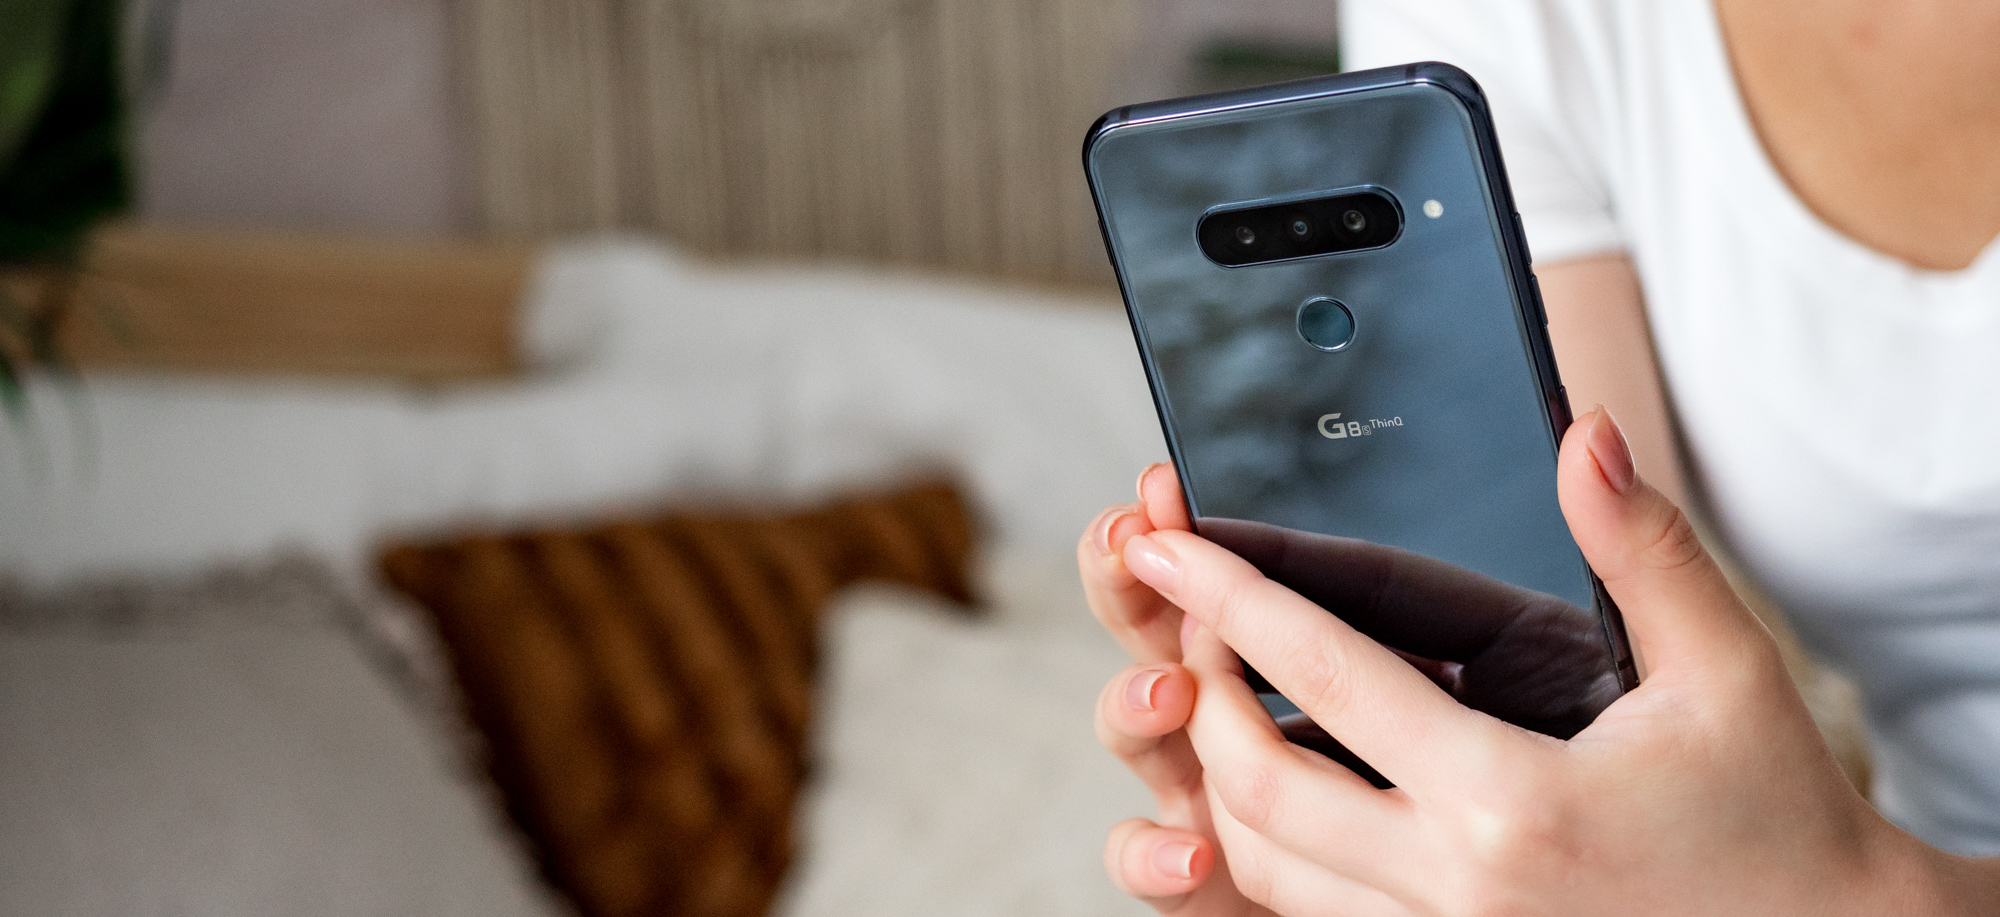 A newcomer from the past. LG G8s - first impressions